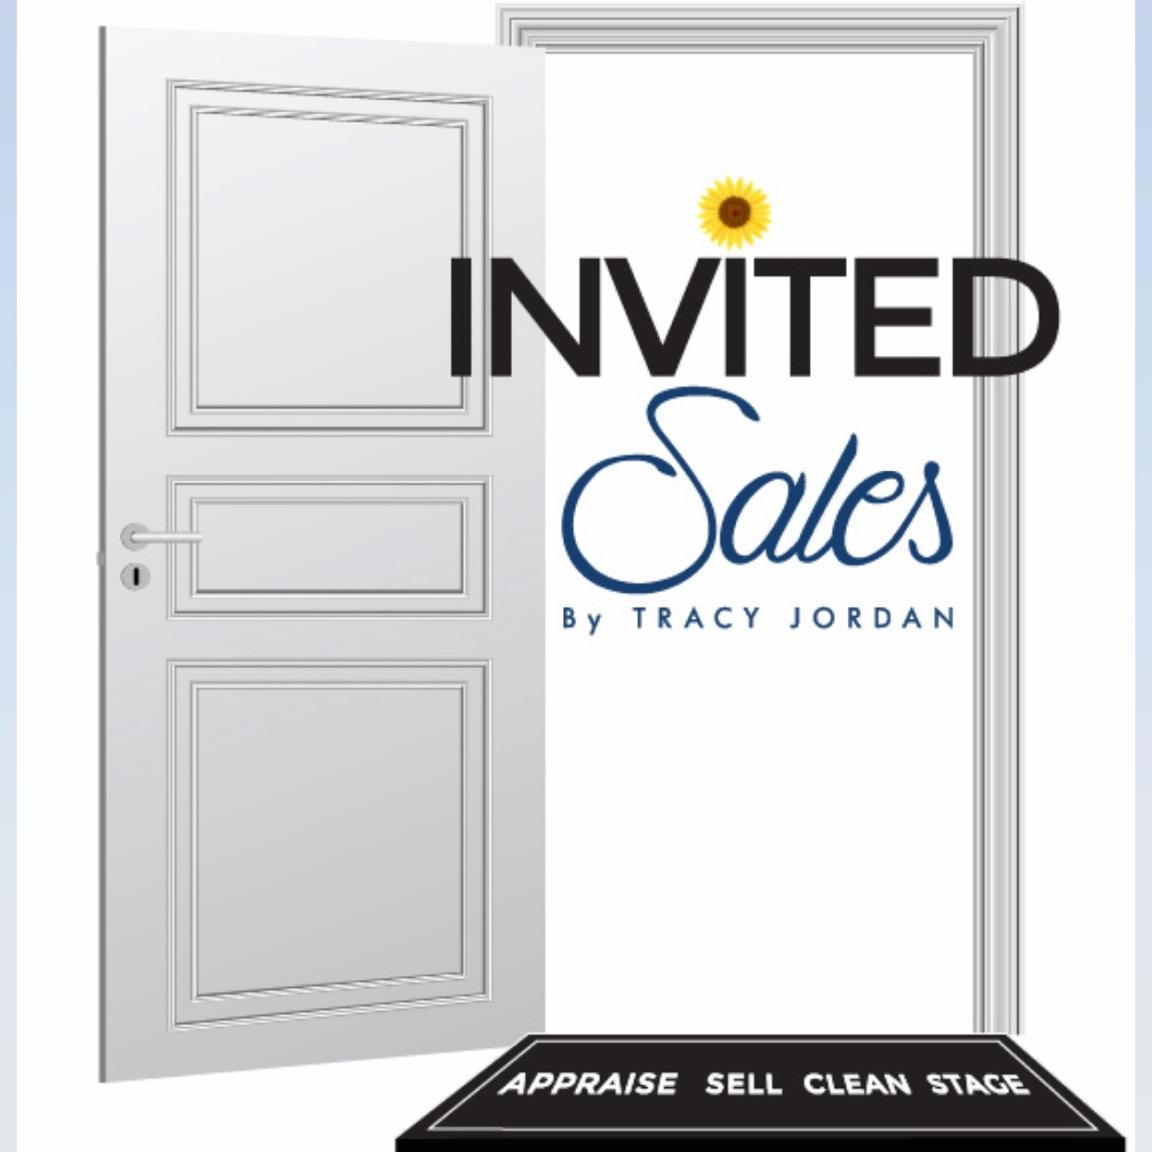 Invited Estate Sales by Tracy Jordan